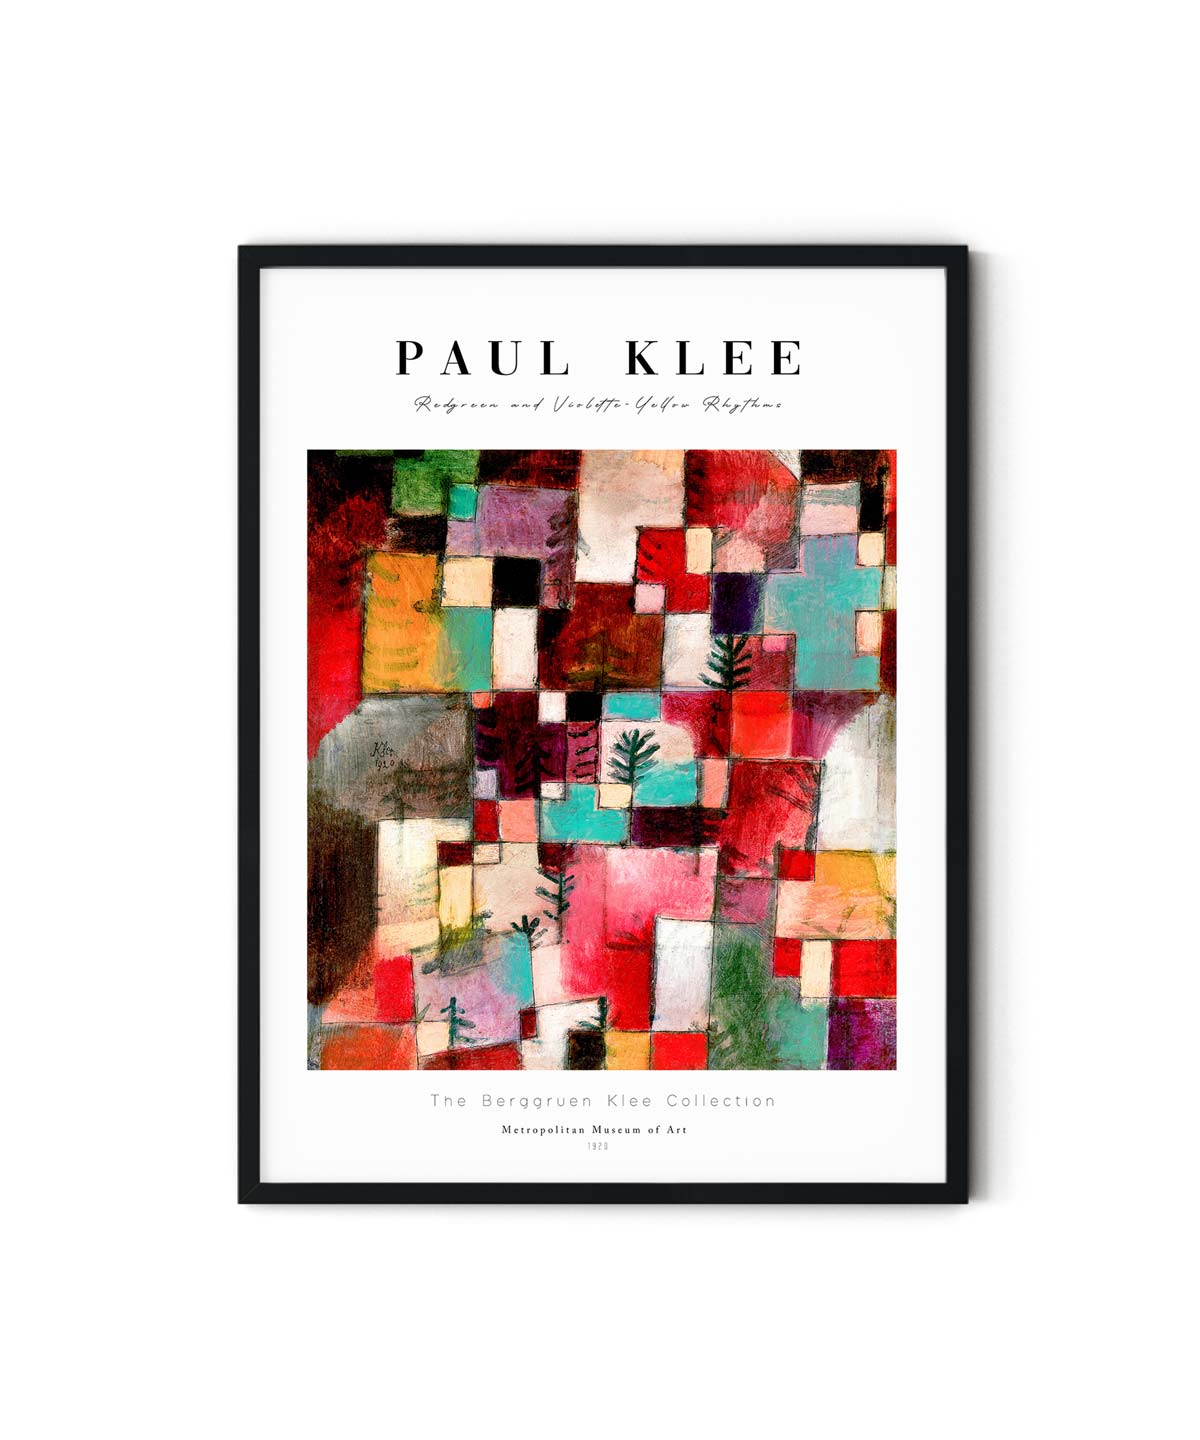 Paul-Klee-Redgreen-and-Violette-Yellow-Rhythms-OS-Poster-Duwart